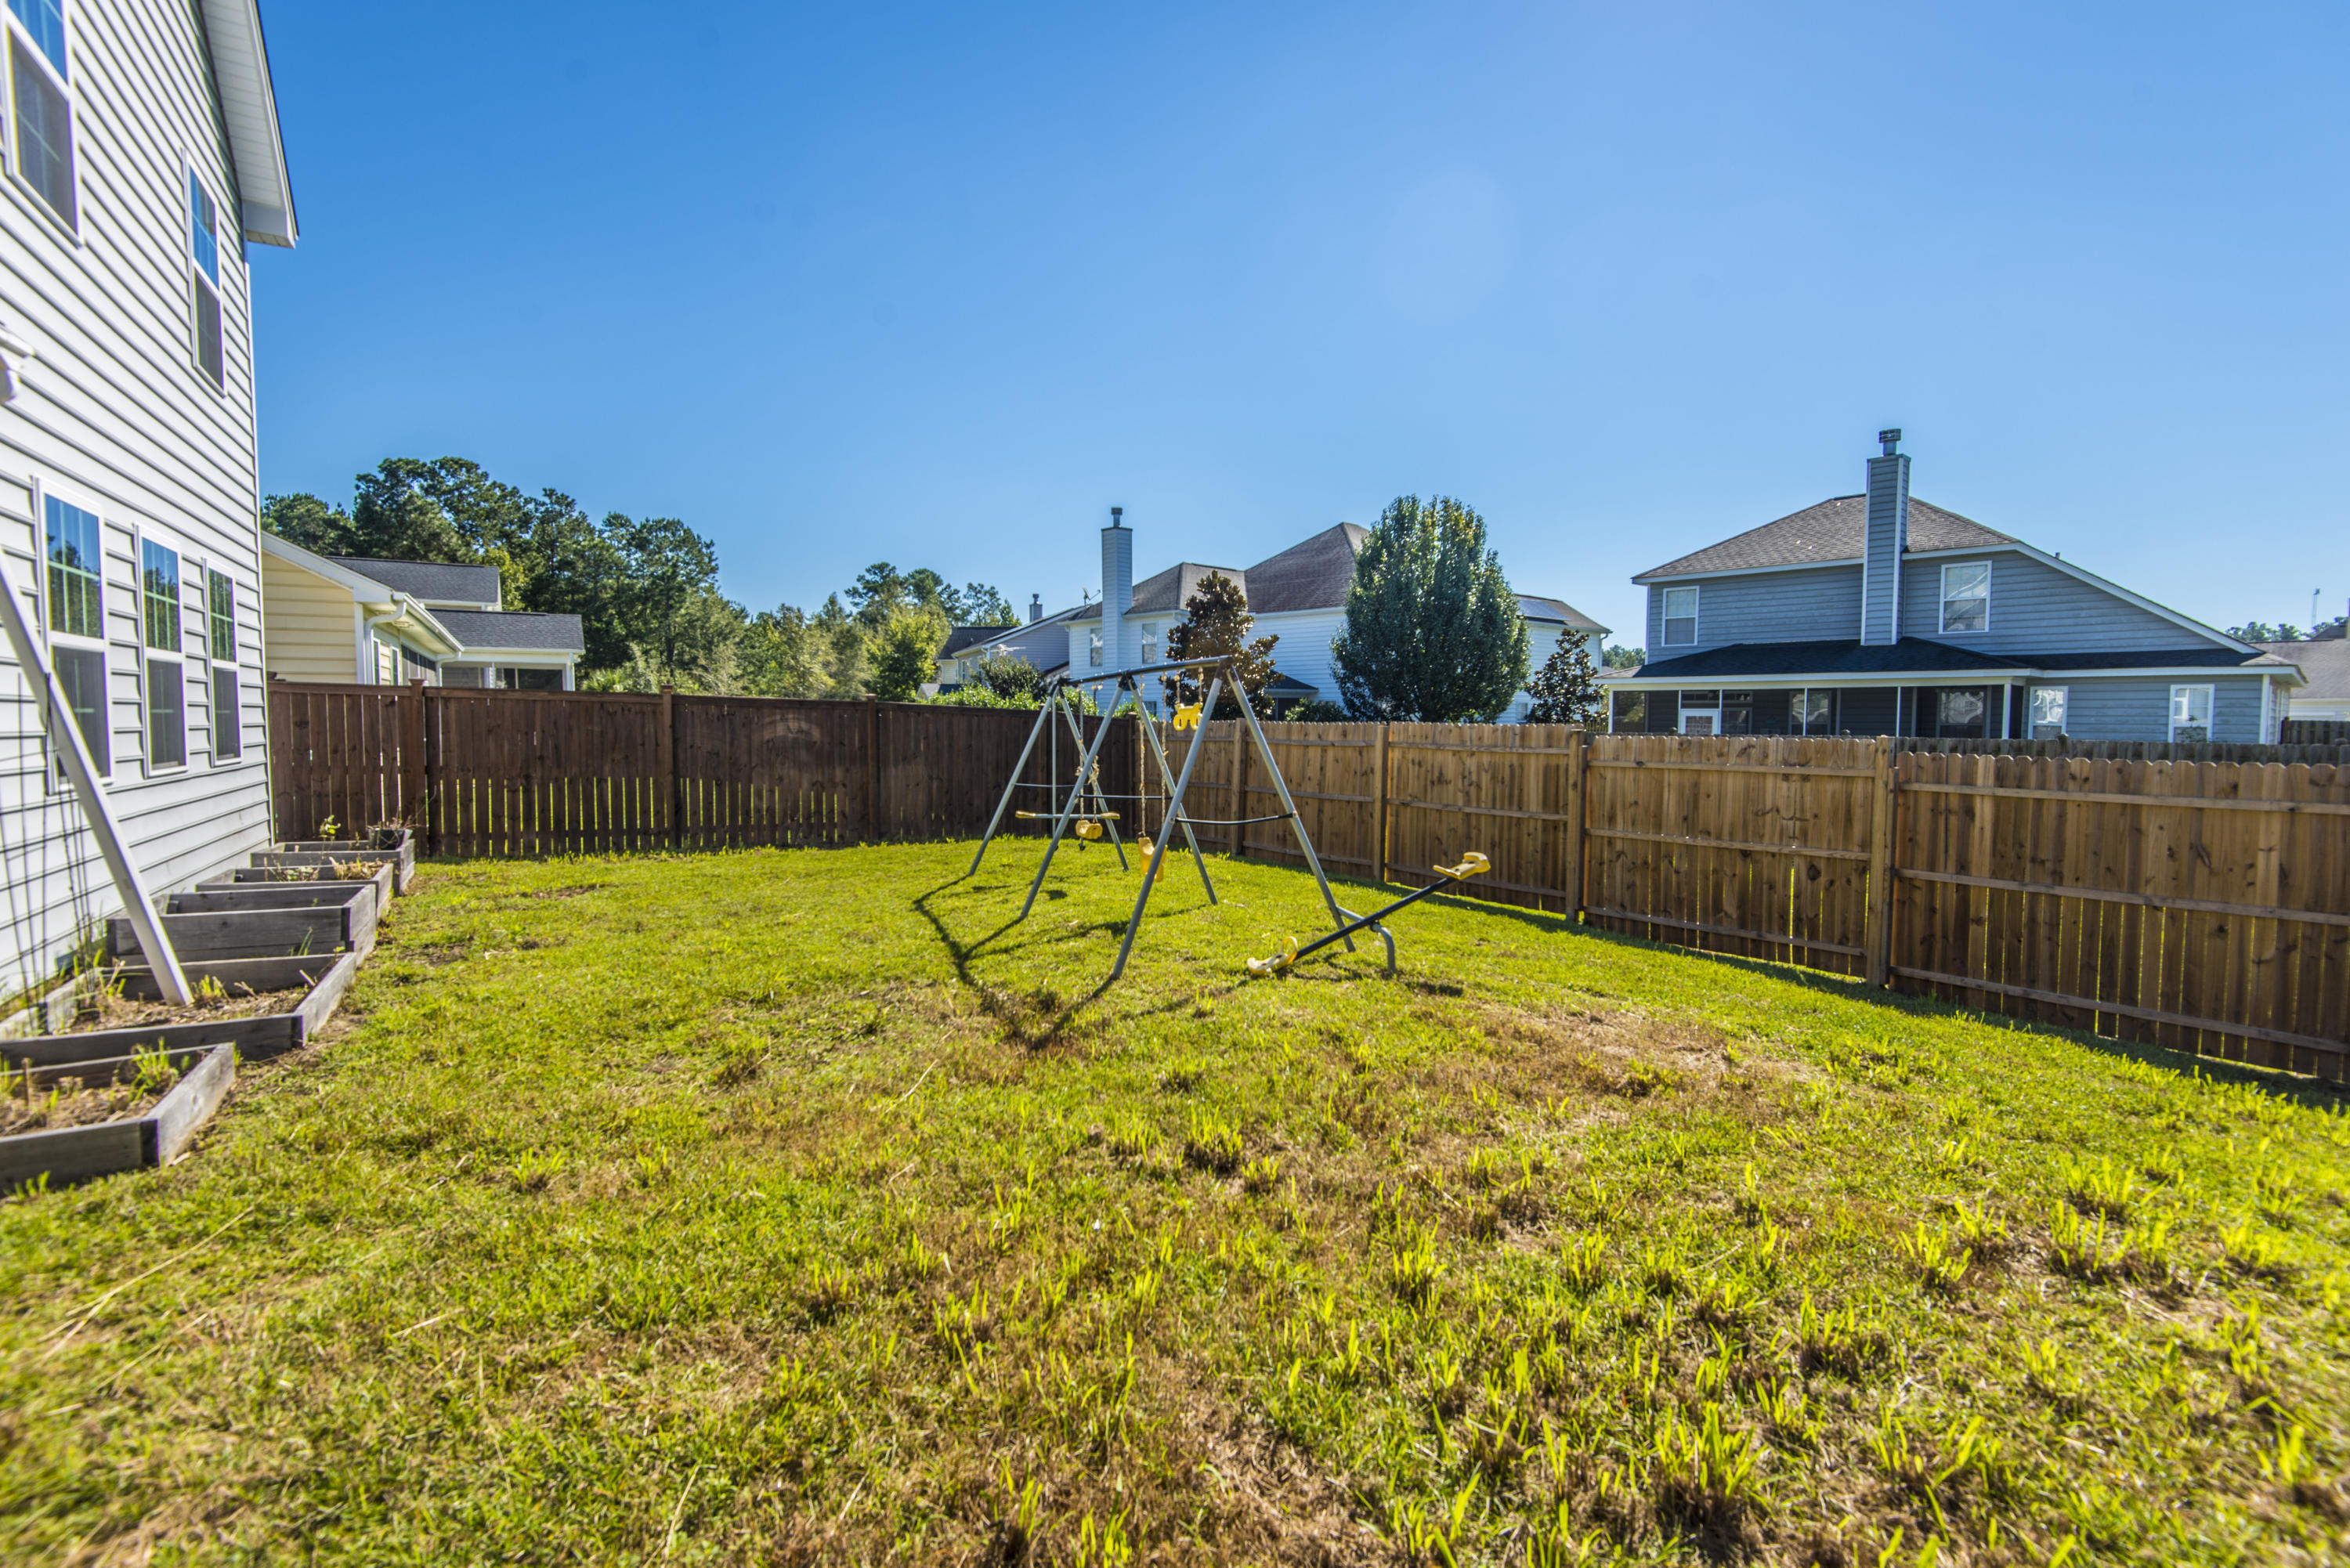 Wentworth Hall Homes For Sale - 216 Wexford, Summerville, SC - 24